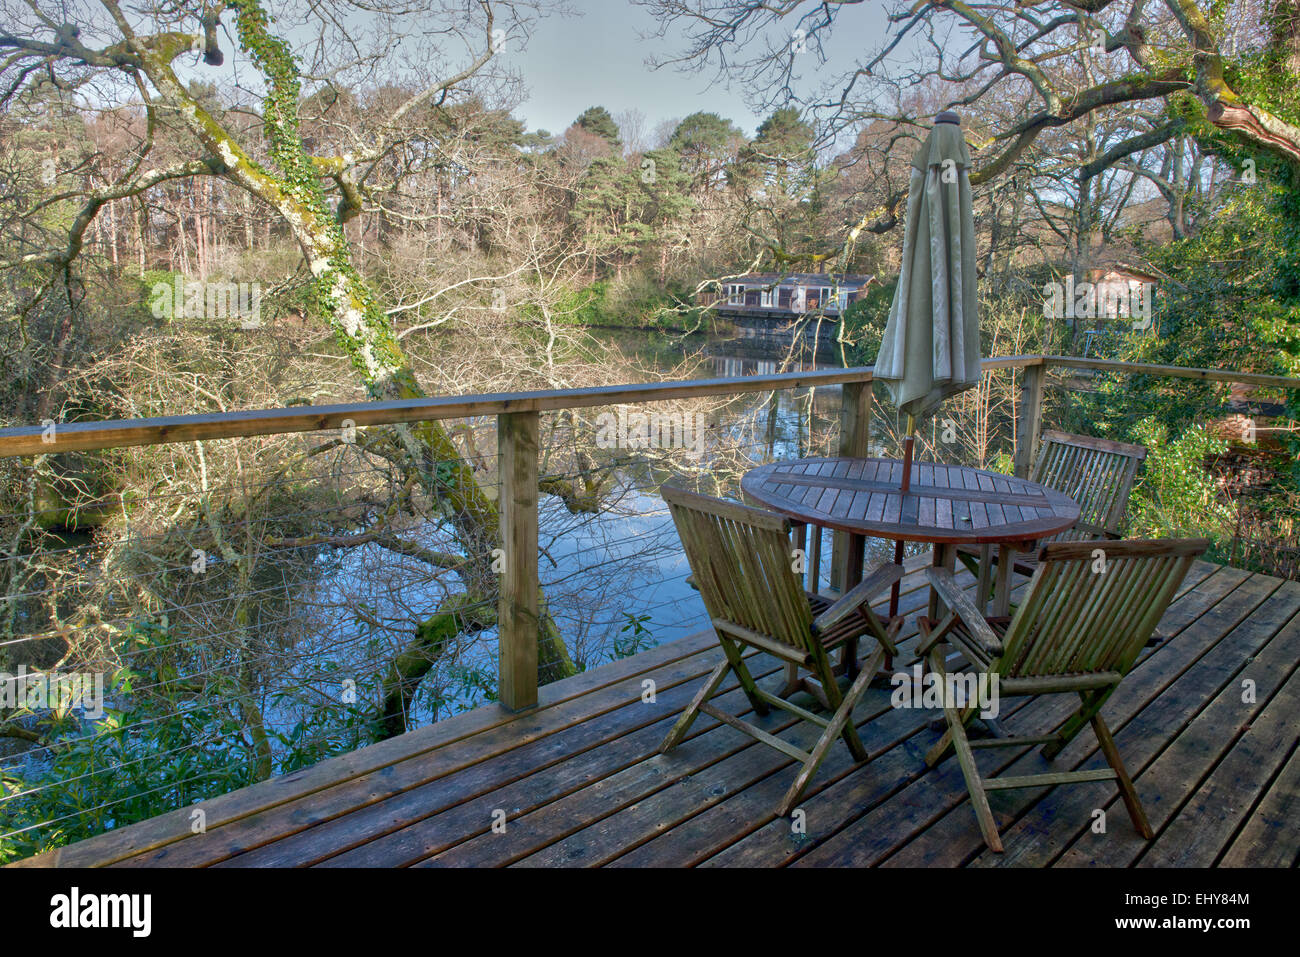 Indio Lake Lodges, Bovey Tracey, Devon, England, UK, GB - Stock Image